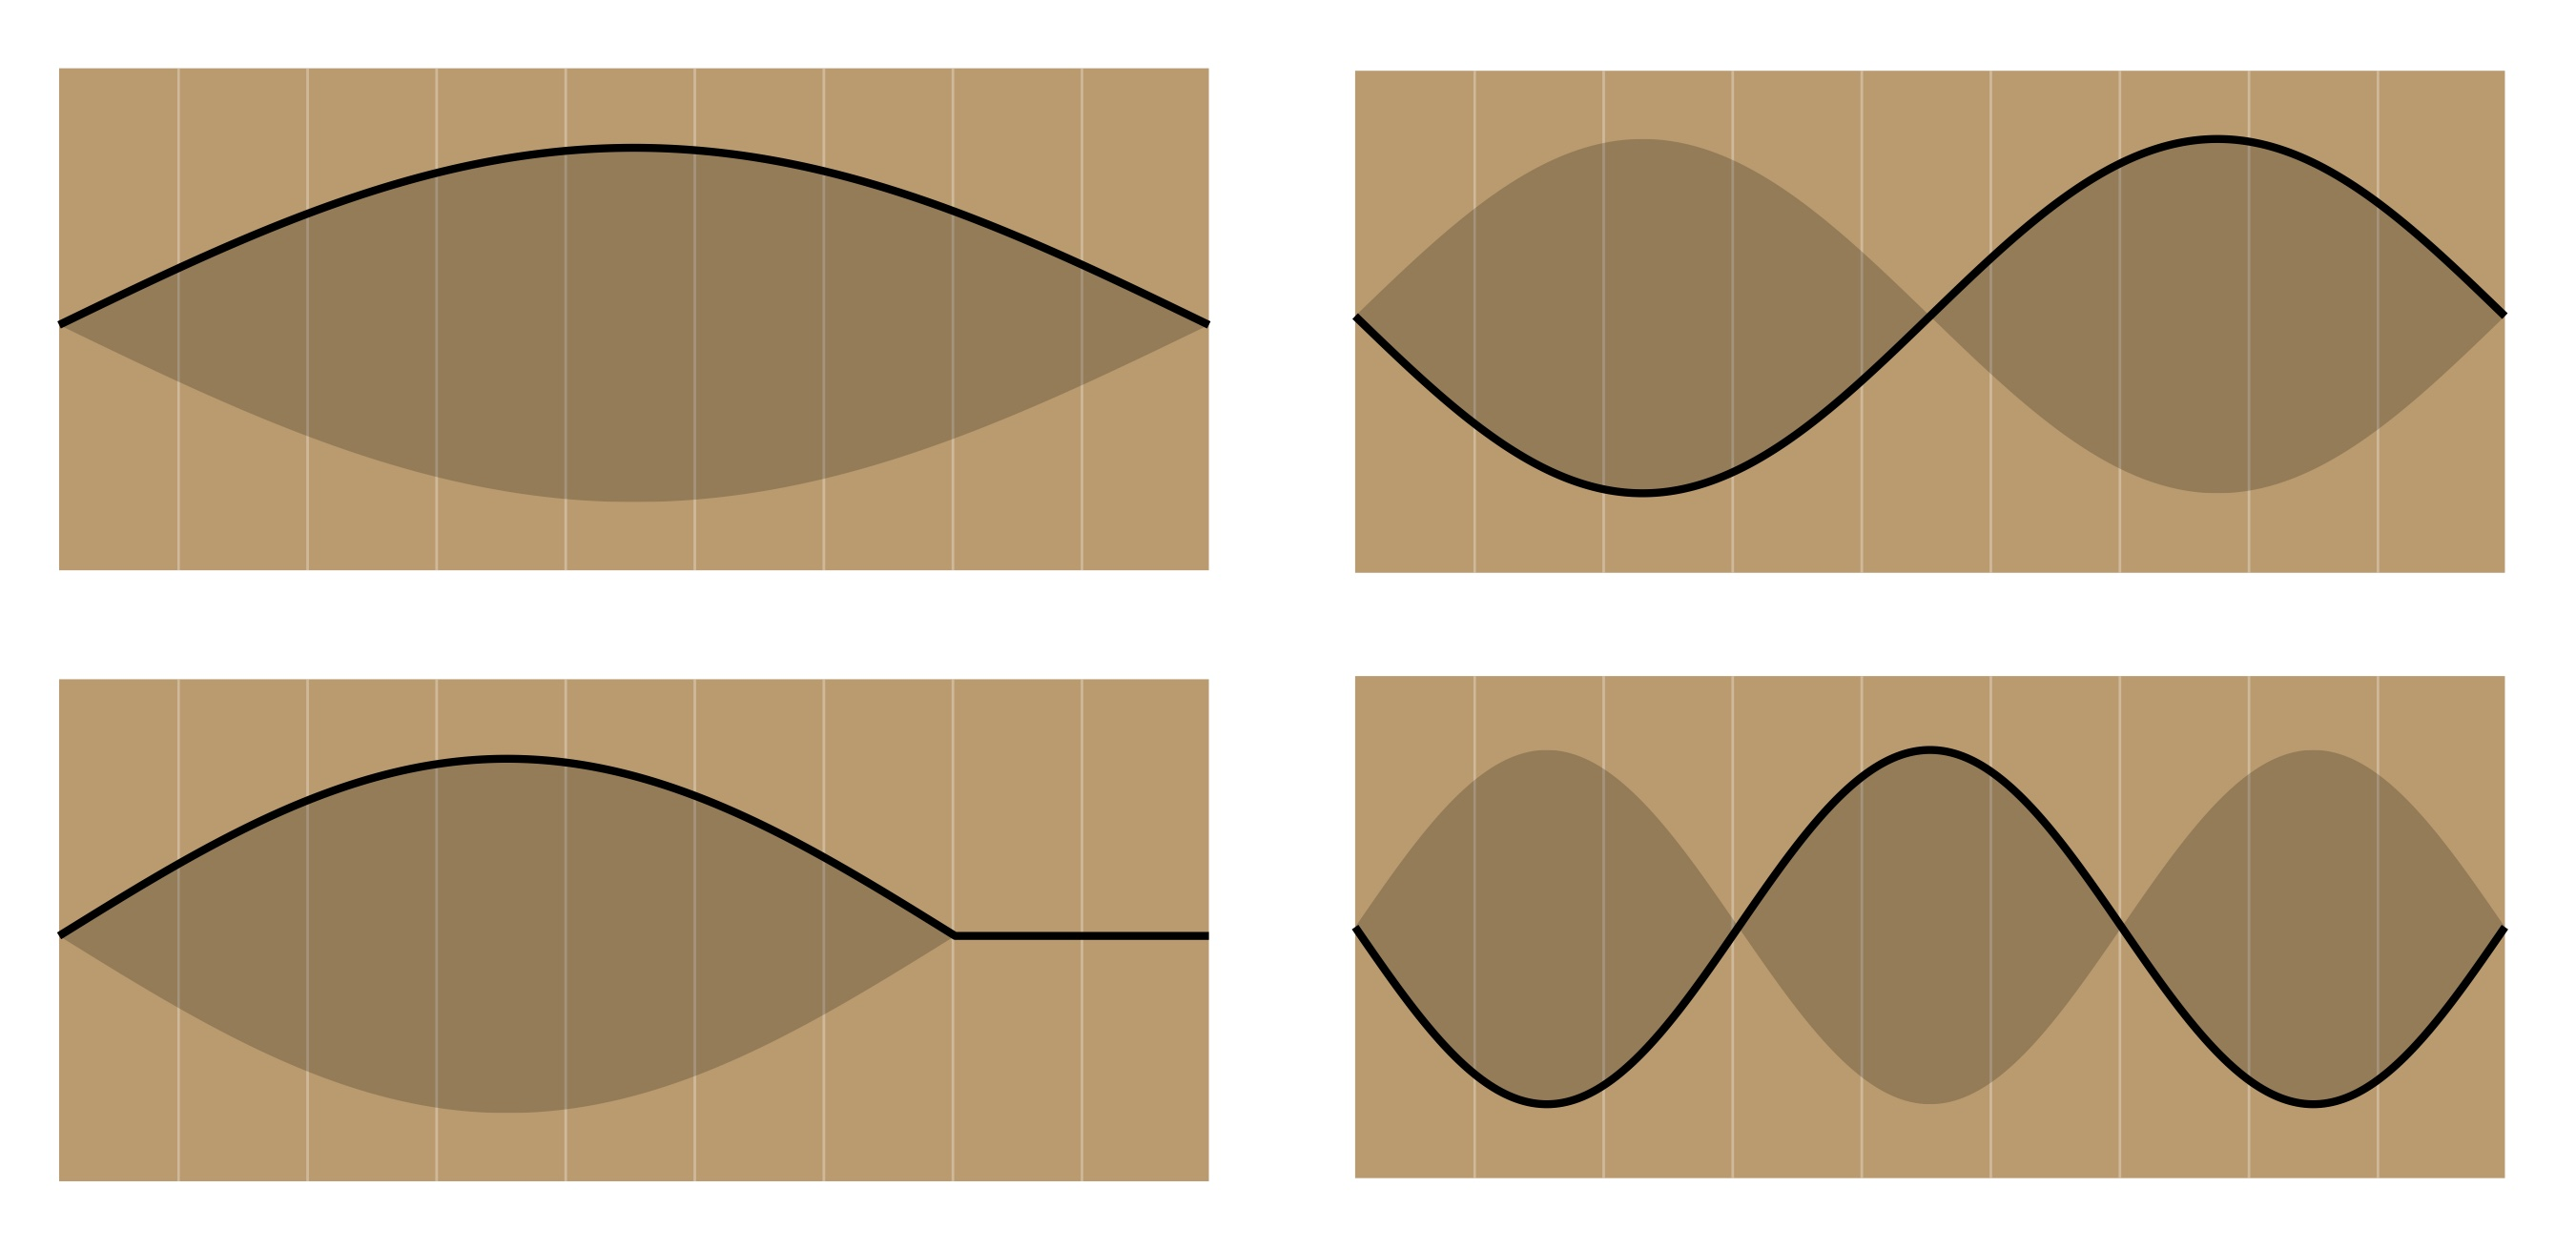 The trapped waves of a guitar string. Clockwise from upper left are the fundamental, 2nd harmonic, and 3rd harmonic of an open string. Only waves that fit neatly in the trap are allowed, and the increasing frequency is associated with higher energy (higher pitch). We can also shorten the trap by using one of the guitar's frets, which changes the frequency of the fundamental (lower left) and all the harmonics.